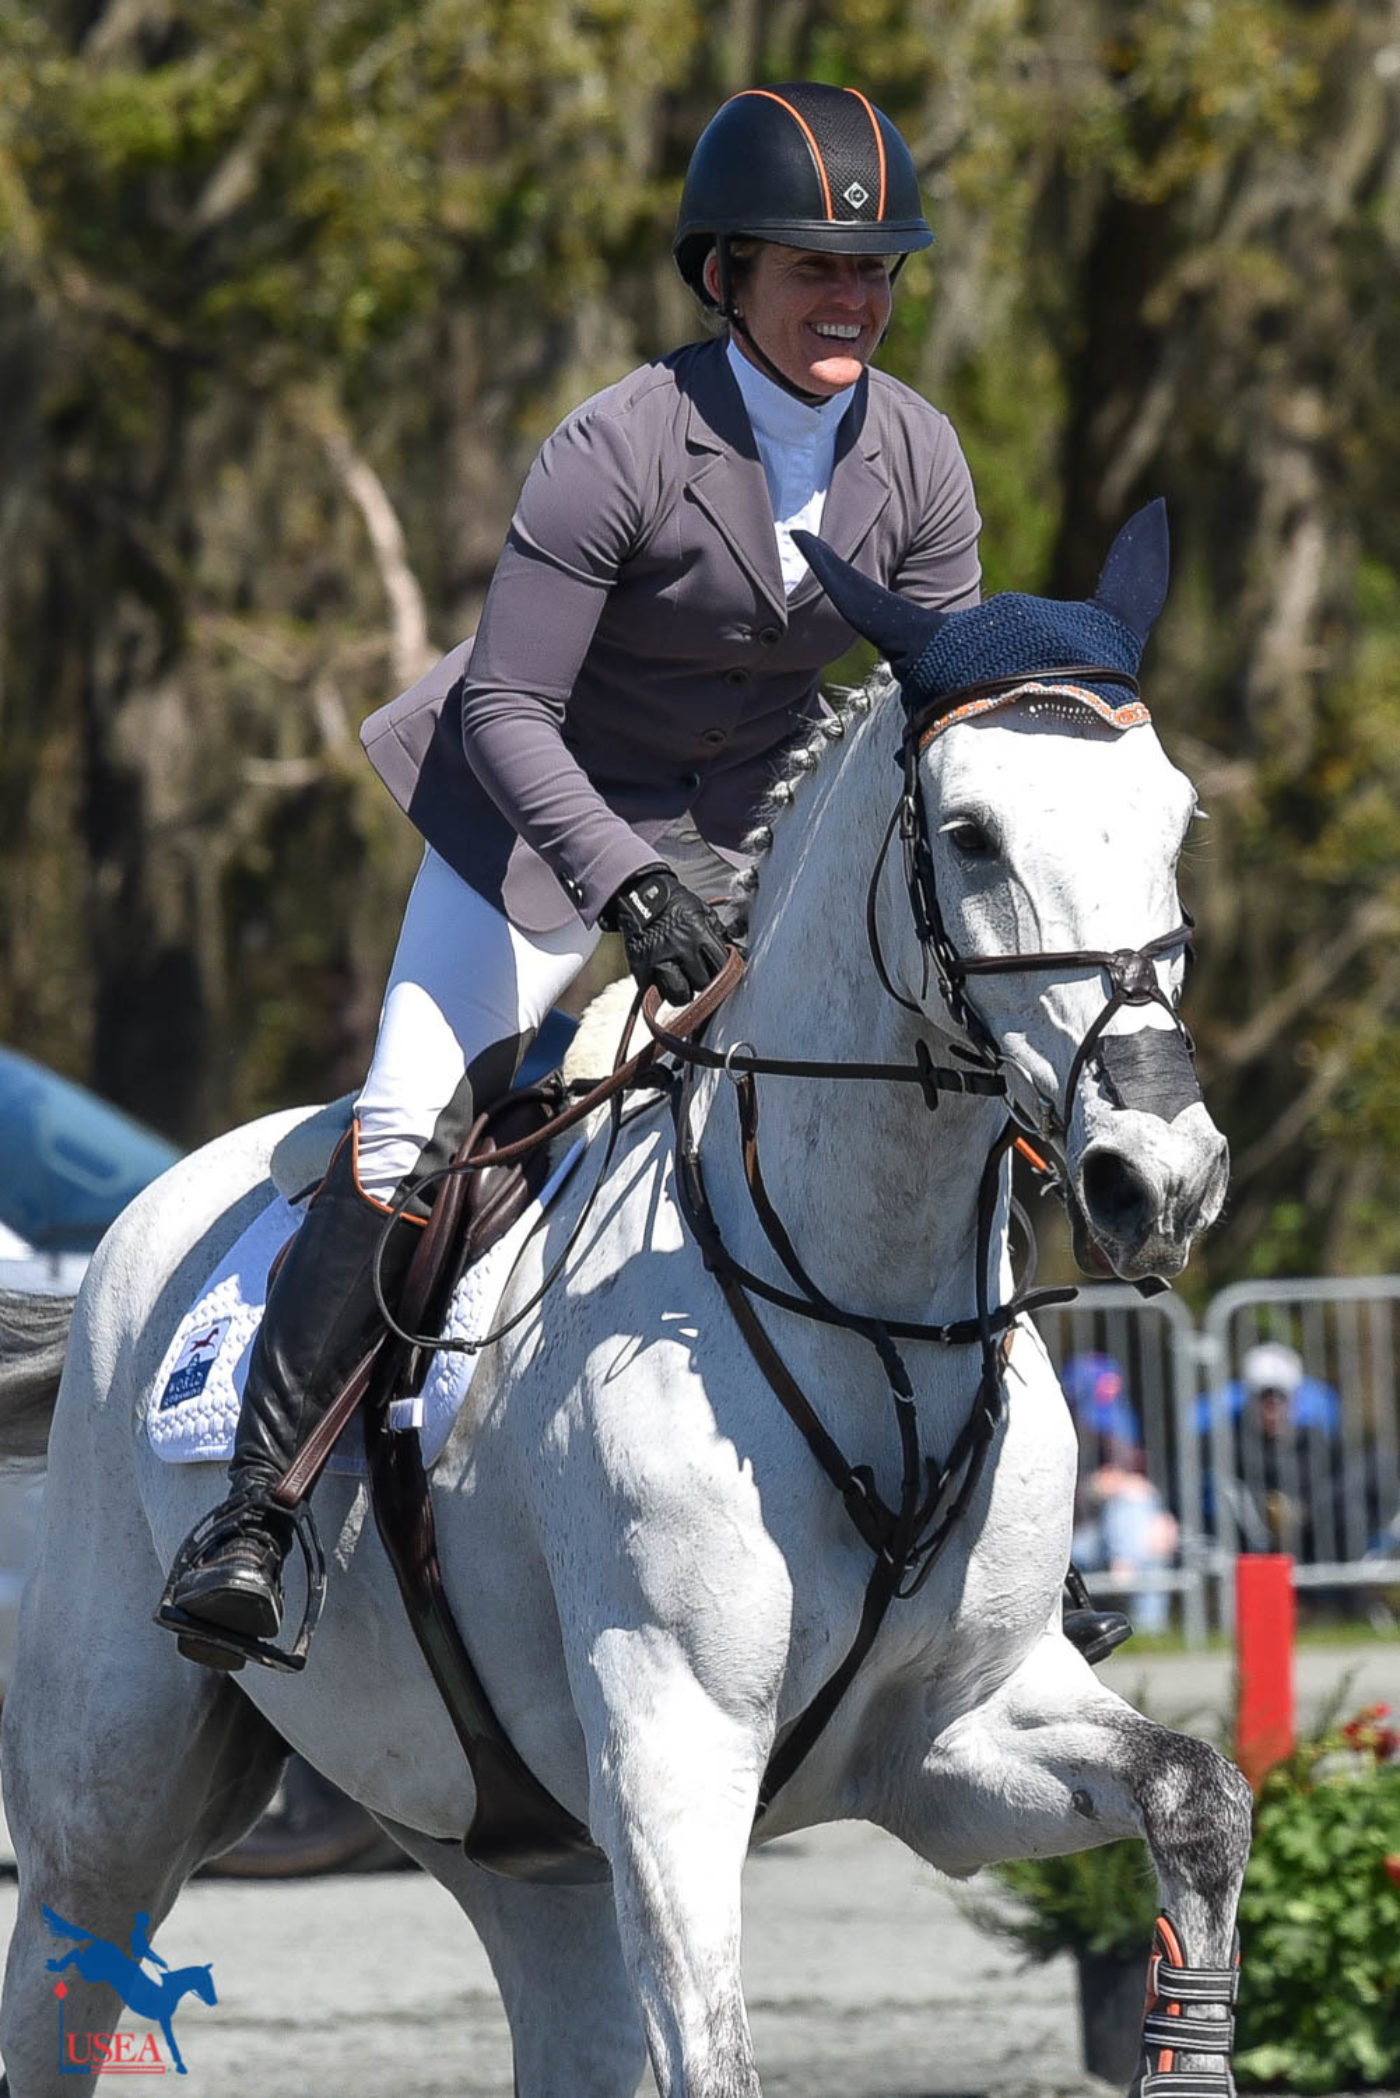 Happy champion! USEA/Kate Lokey photo.